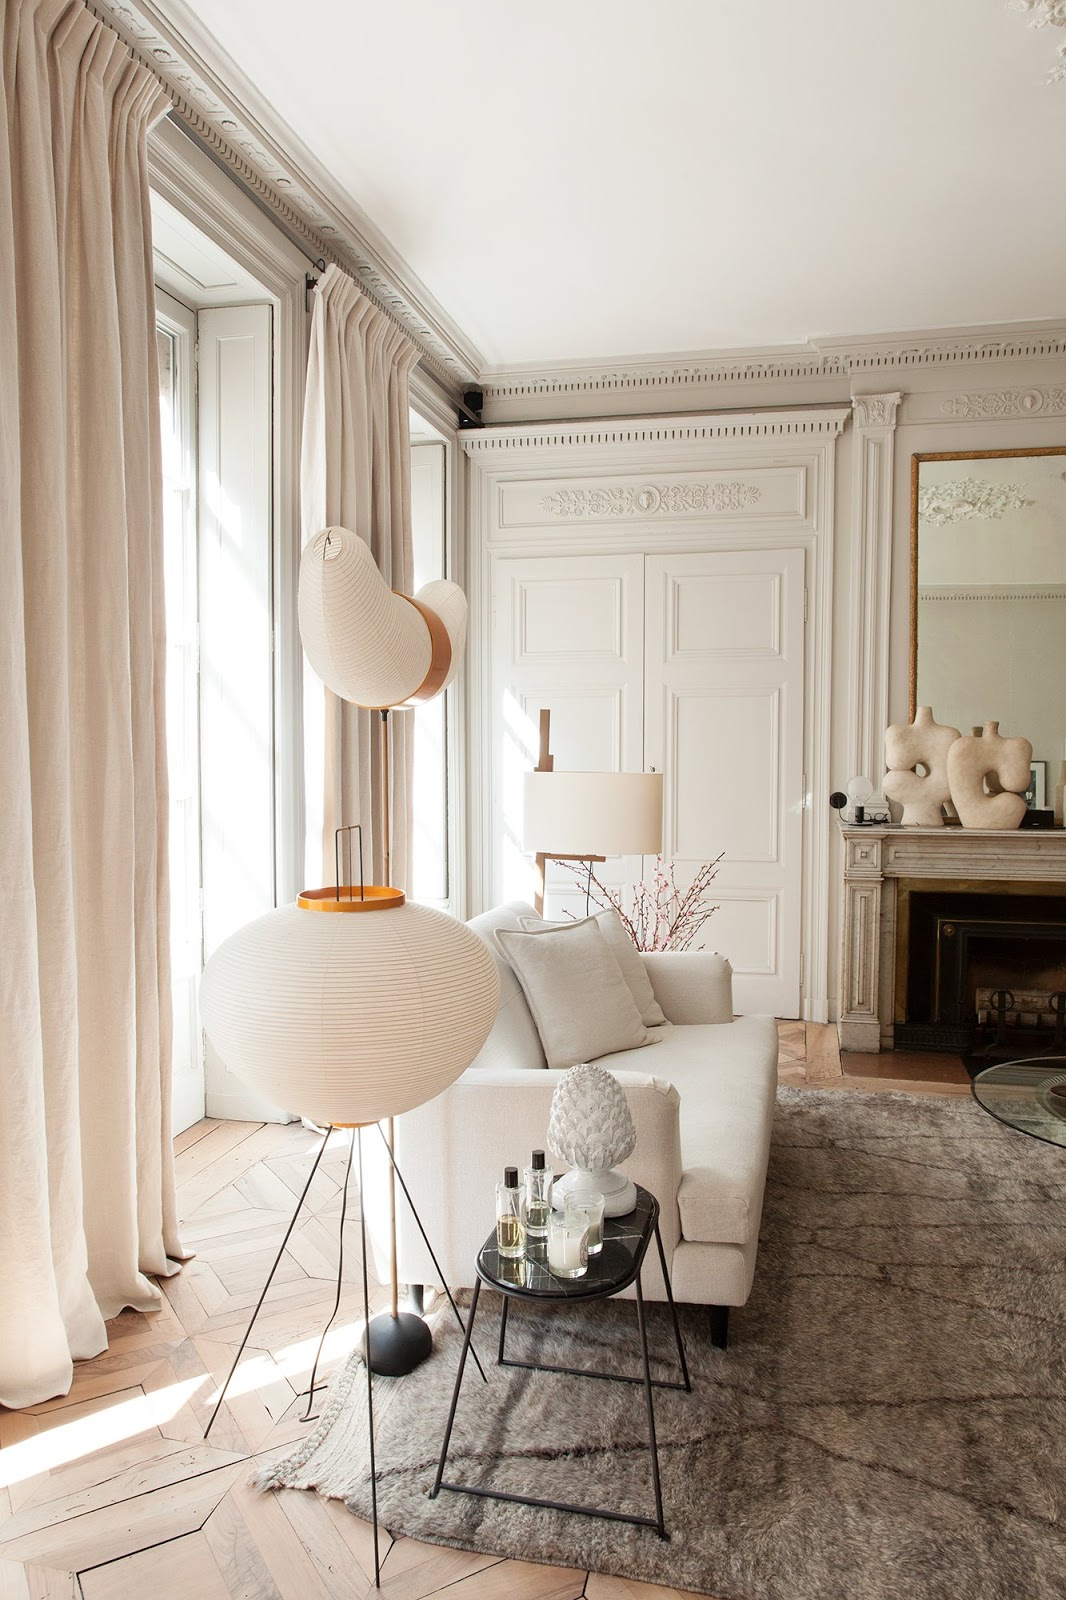 chic apartment in lyon at home designers pierre emmanuel martin stephane garotin of maison hand decor inspiration